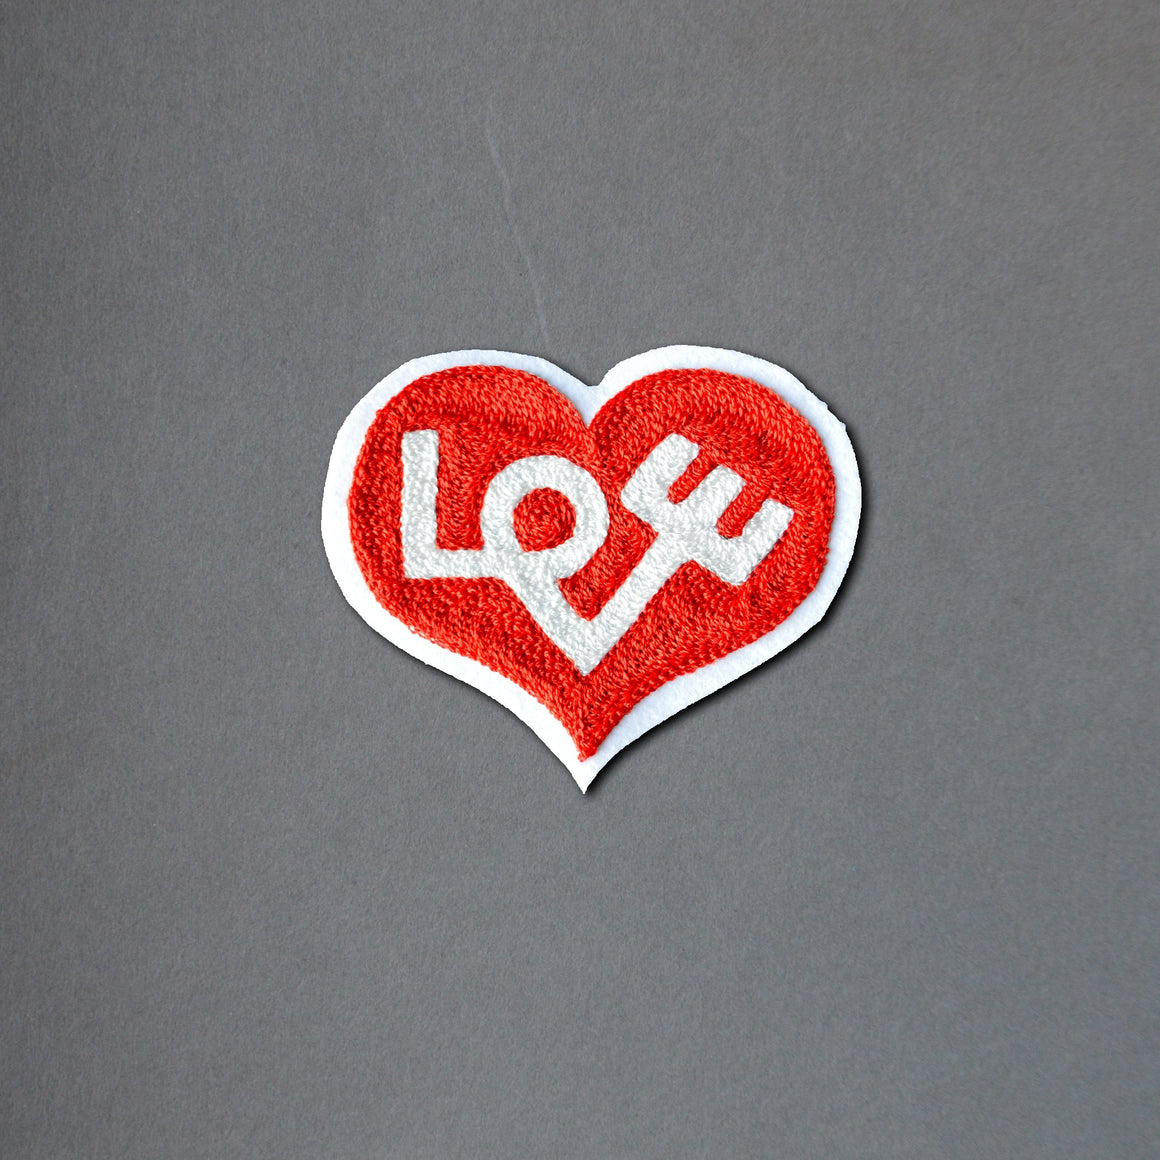 Chain Stitch Patch- LOVE Heart